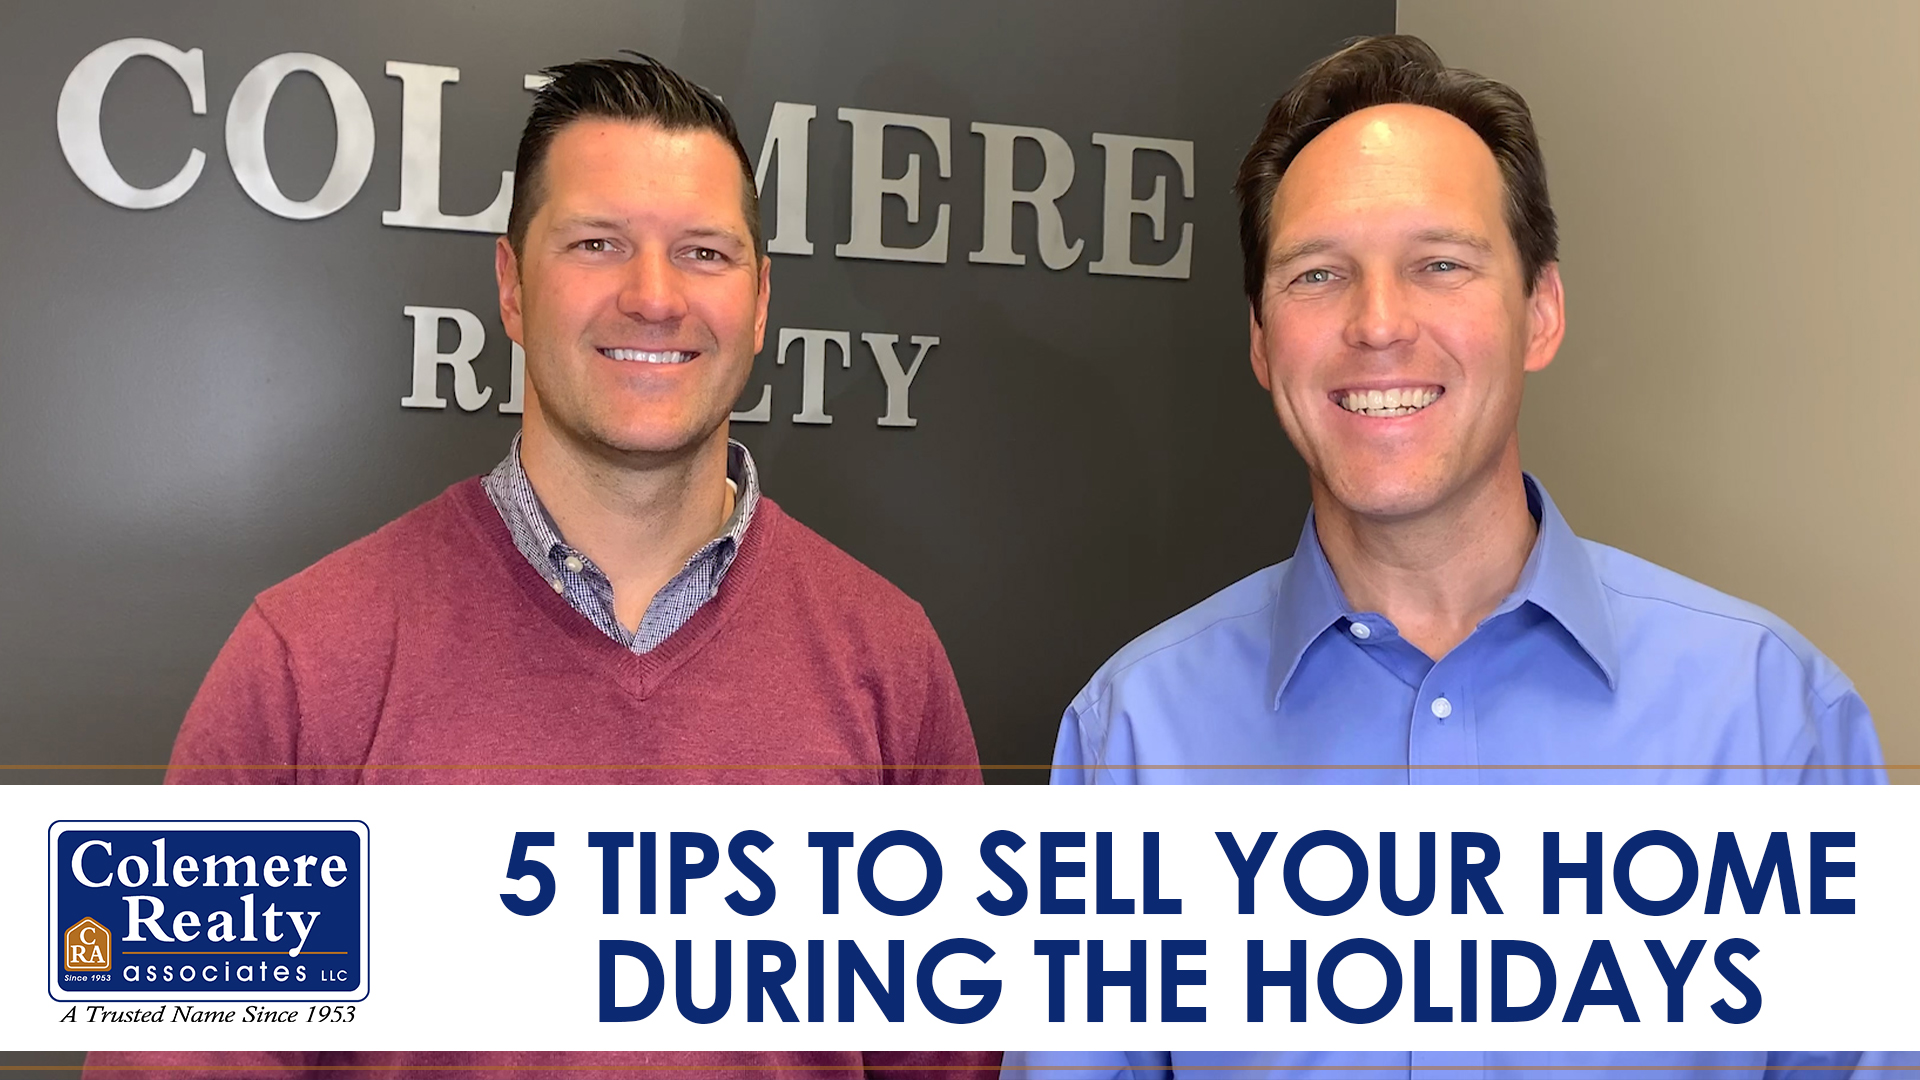 The Keys to a Successful Holiday Home Sale